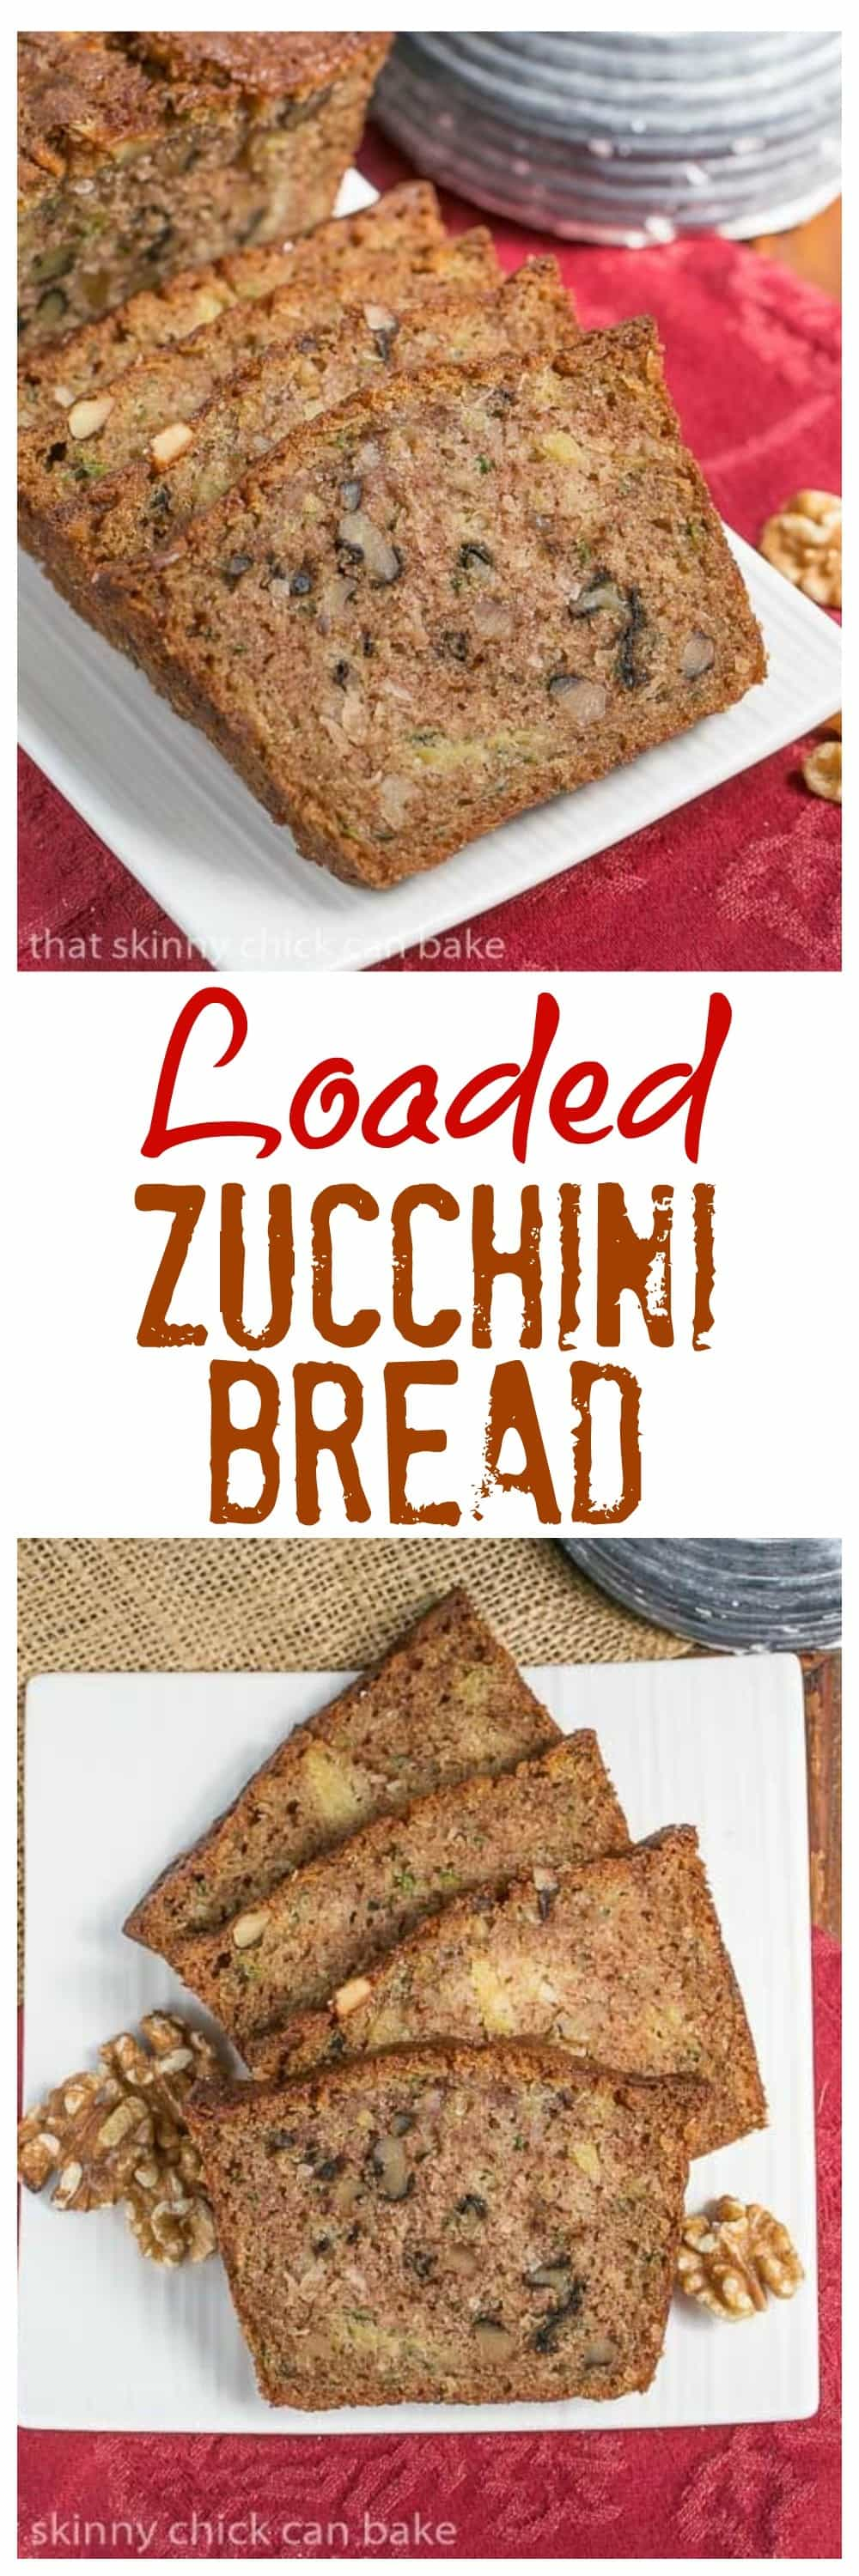 Pineapple Coconut Zucchini Bread - this loaded zucchini bread will win you over with your first bite! #zucchinibread #quickbread #pineapple #coconut